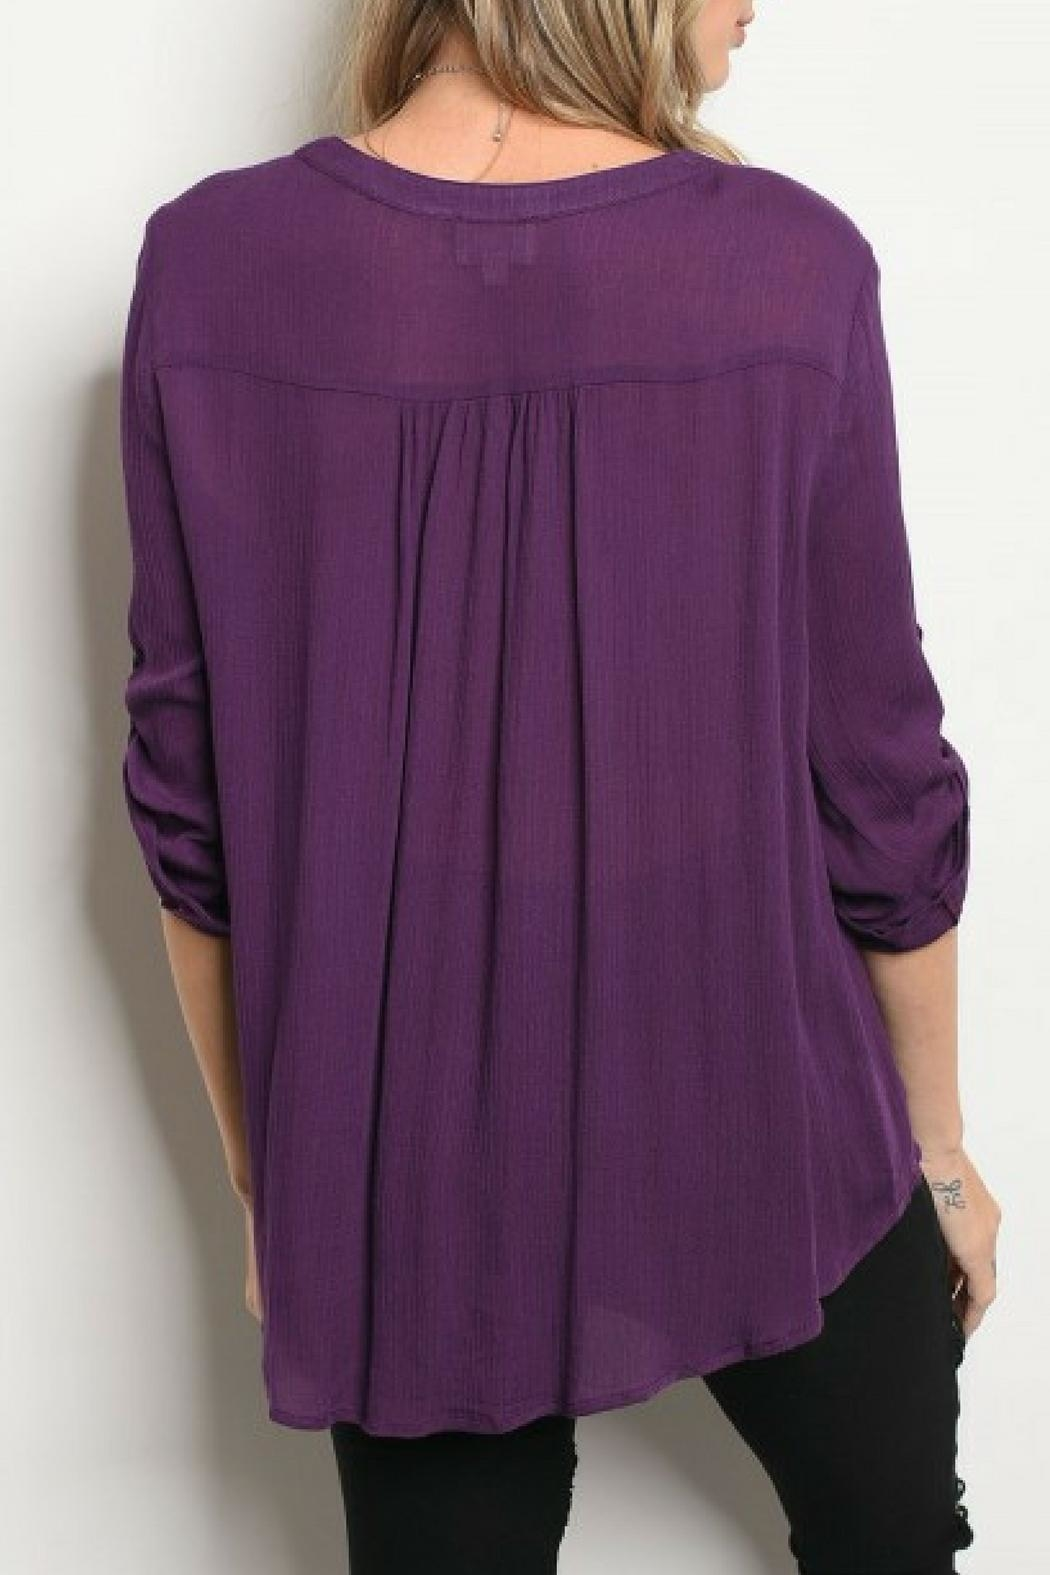 Emory Park Eggplant Embroidered Blouse - Front Full Image